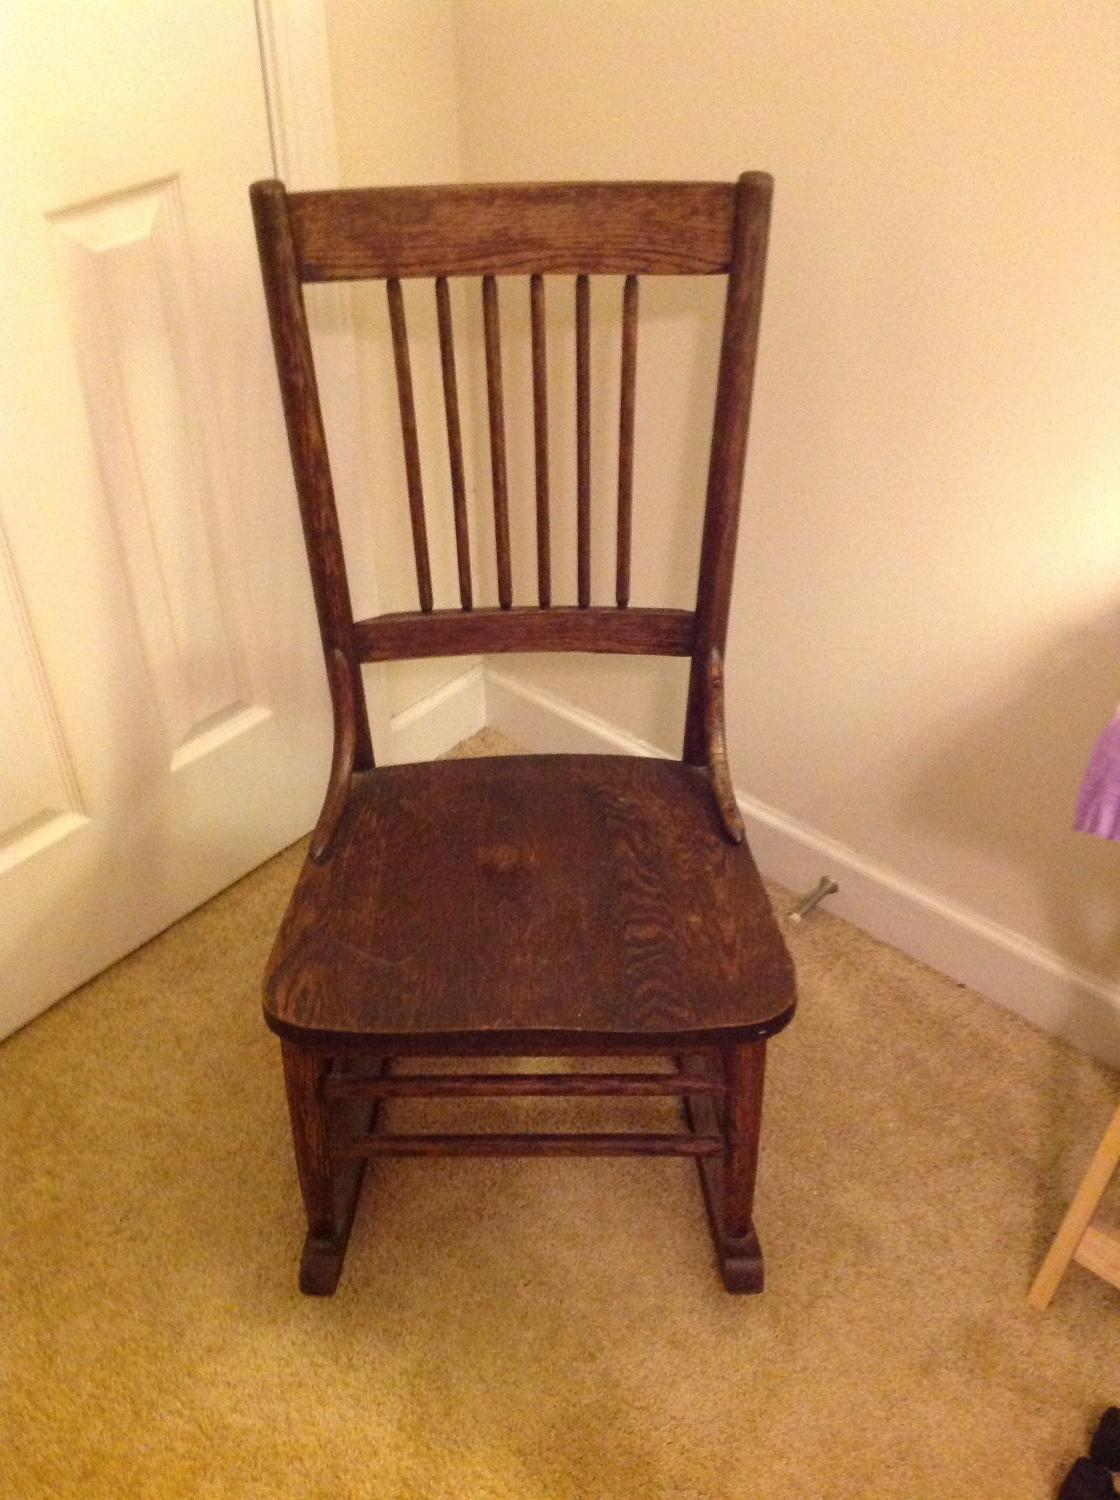 Best Small Rocking Chair For Sale In Concord North Carolina For 2018